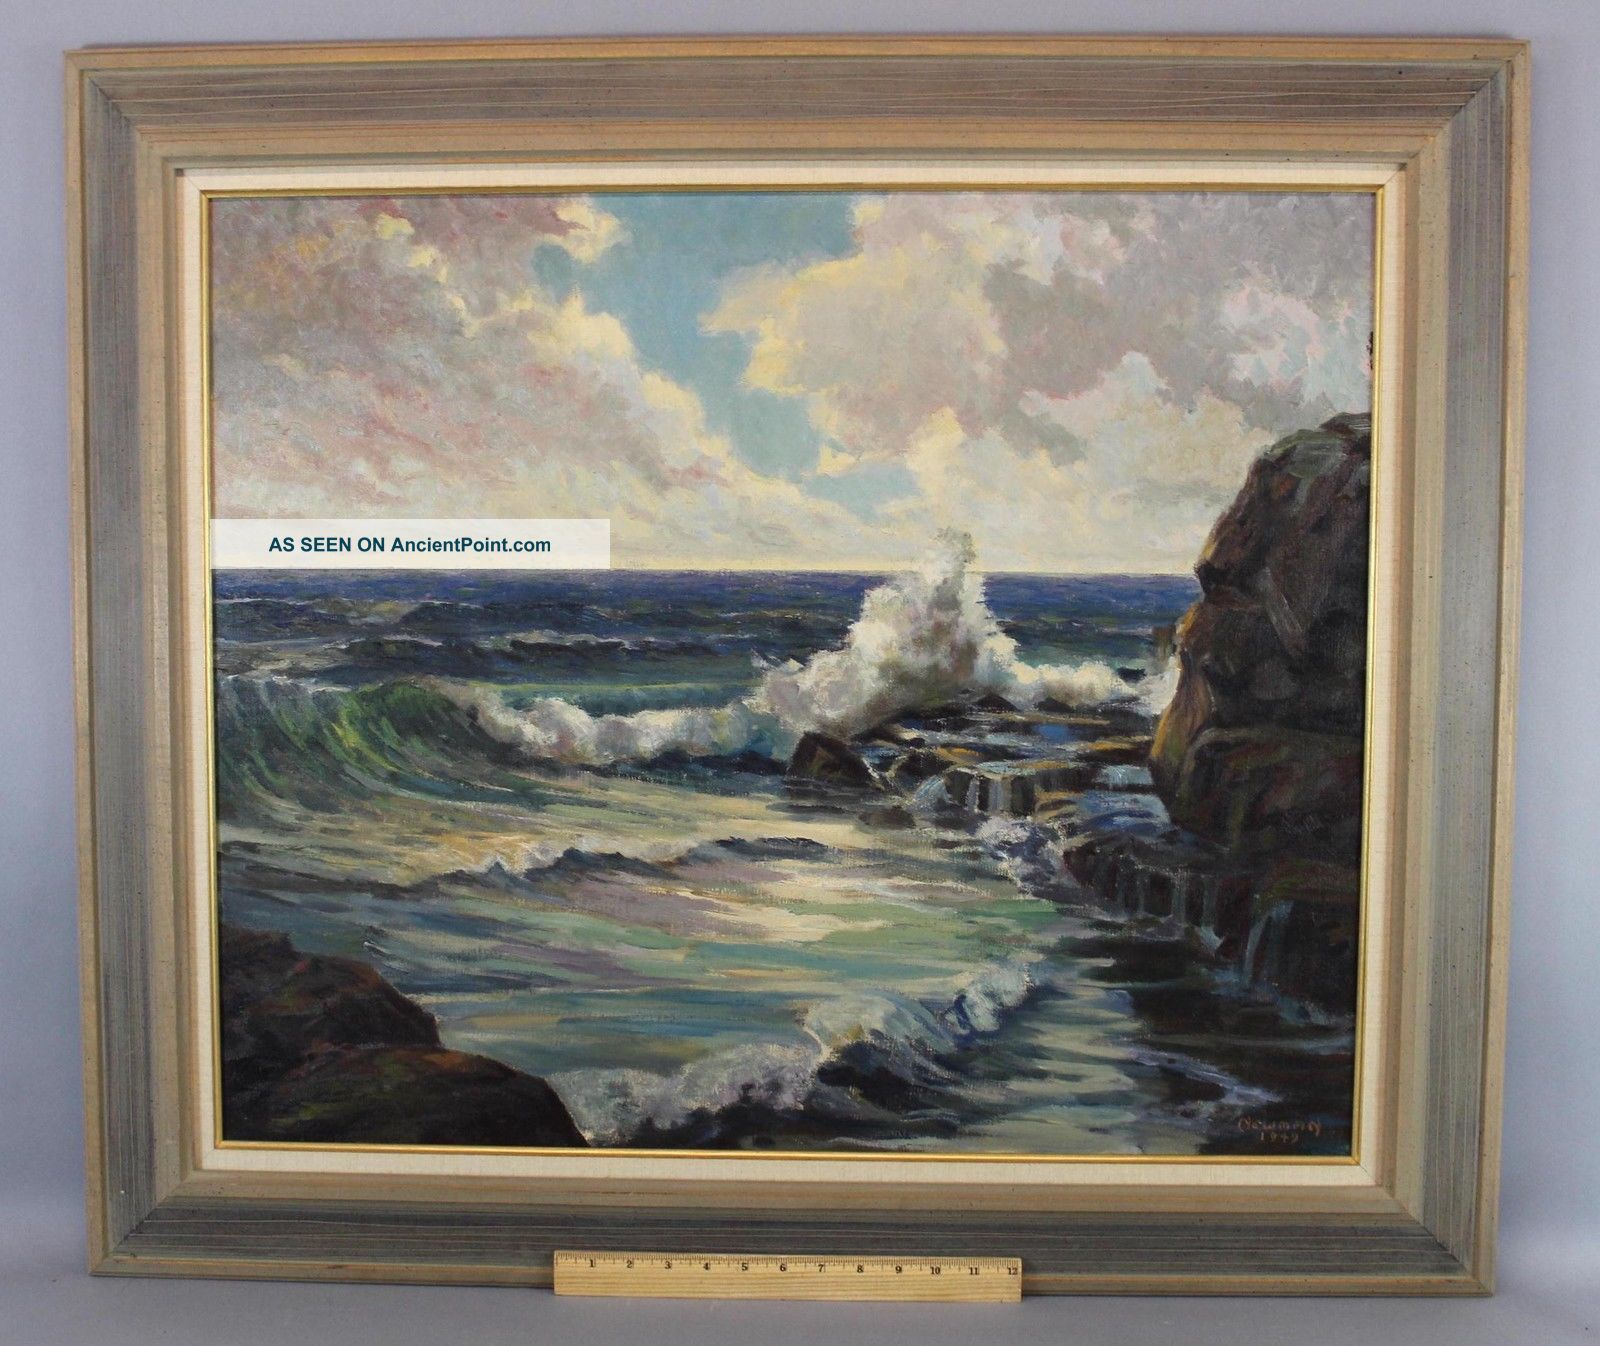 Vintage 1949 Bird Spencer Newman Jersey Maritime Seascape Oil Painting Nr Other Maritime Antiques photo